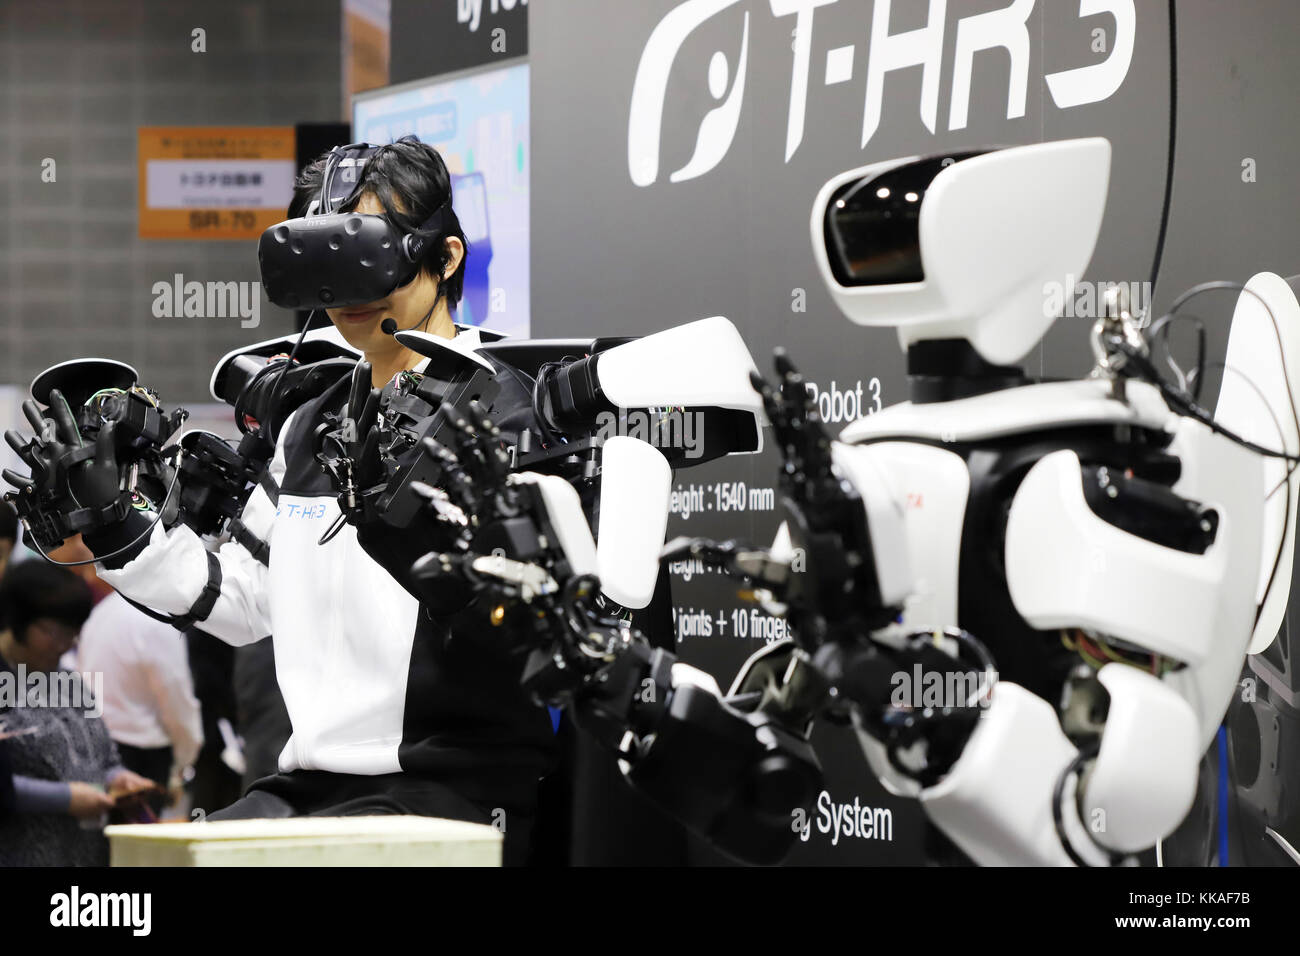 Tokyo, Japan. 29th Nov, 2017. Japan's automobile giant Toyota Motor unveils the new humanoid robot 'T-HR3' - Stock Image